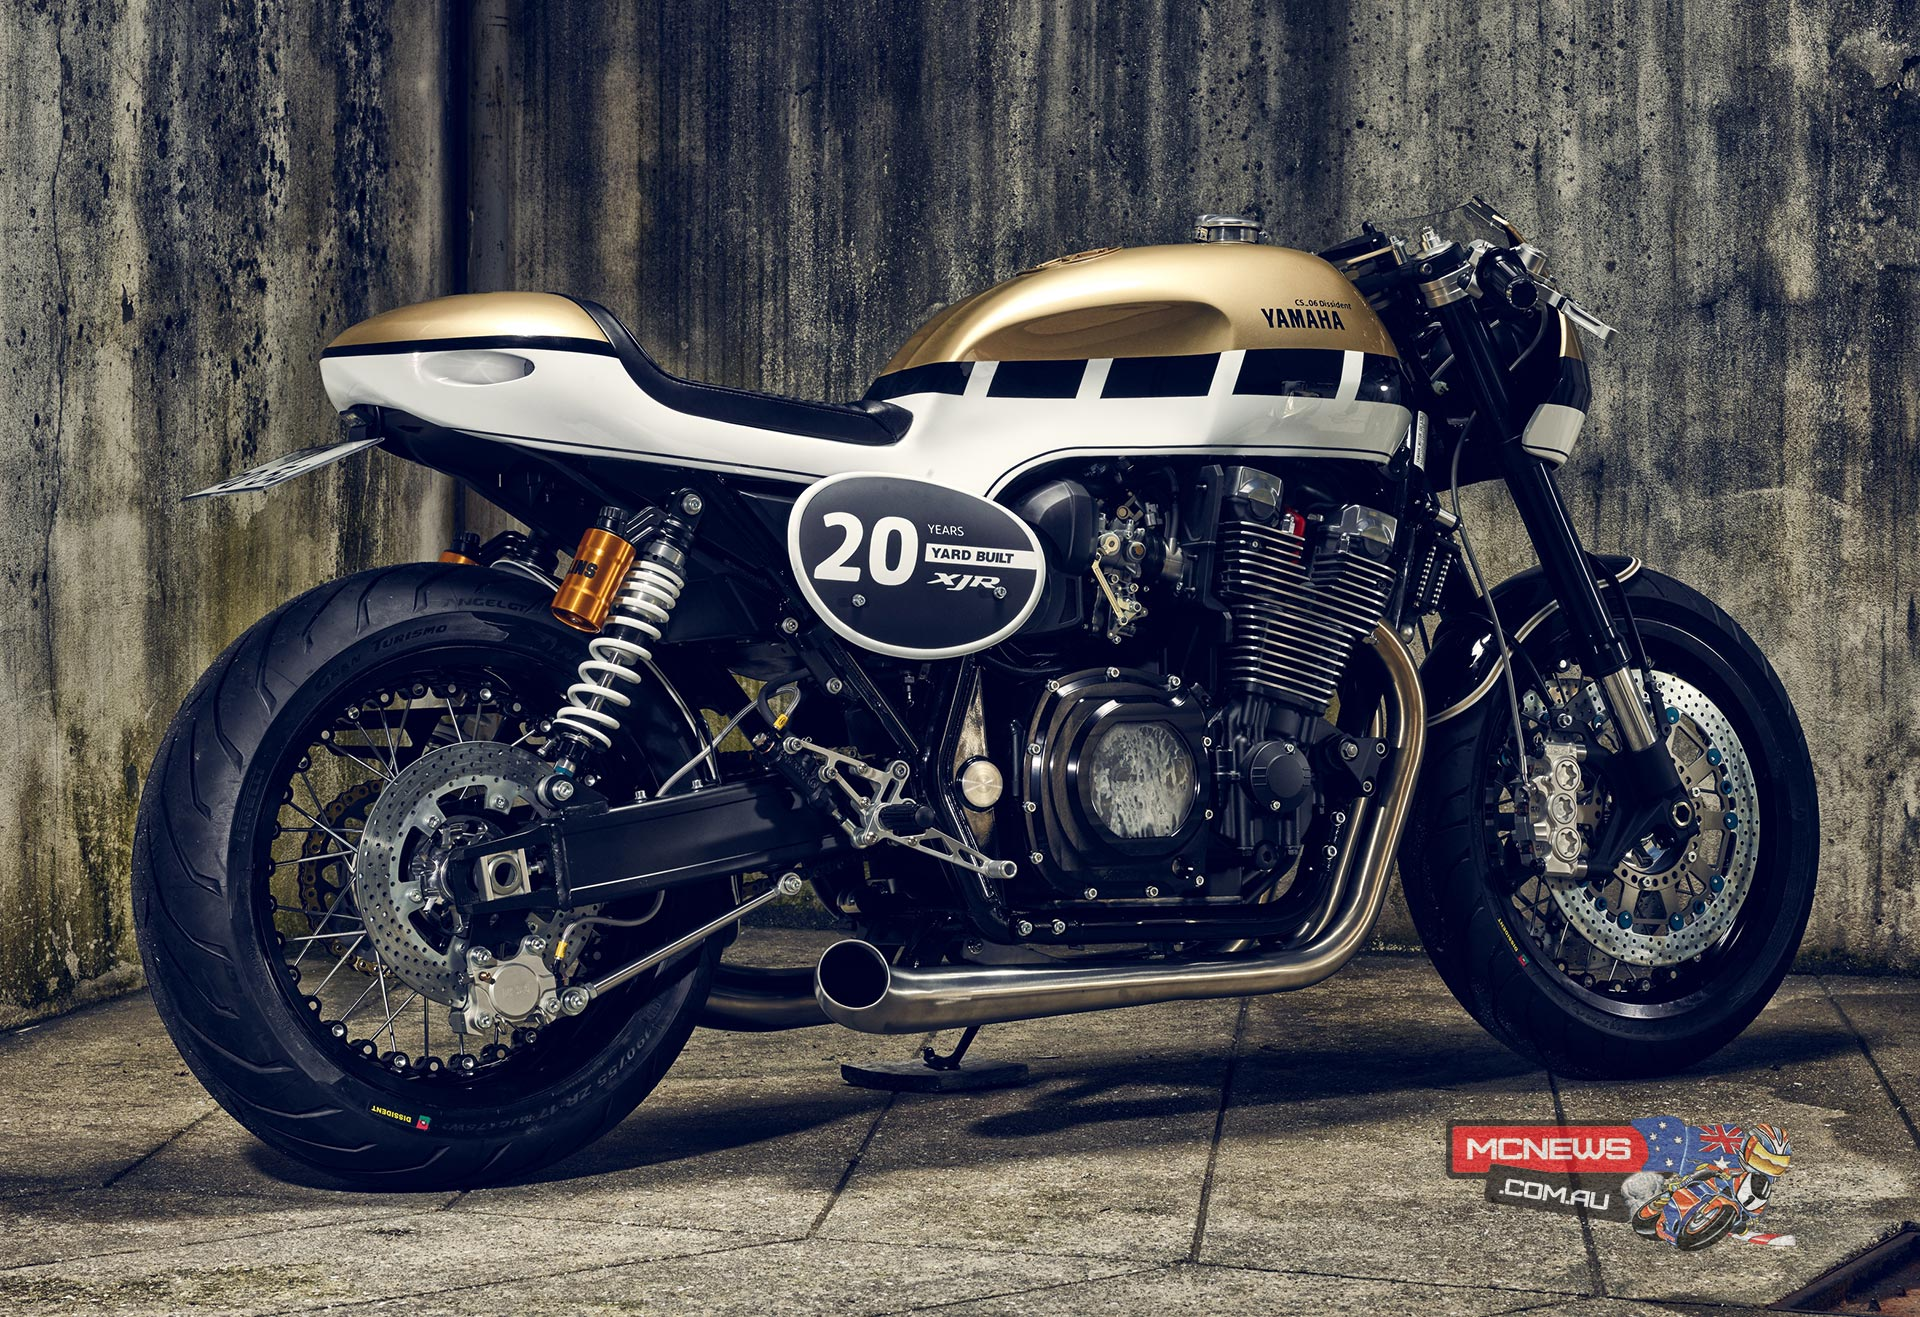 Yamaha XJR 20th Anniversary Continues with it roCks!bikes Yard Built 'CS-06 Dissident'